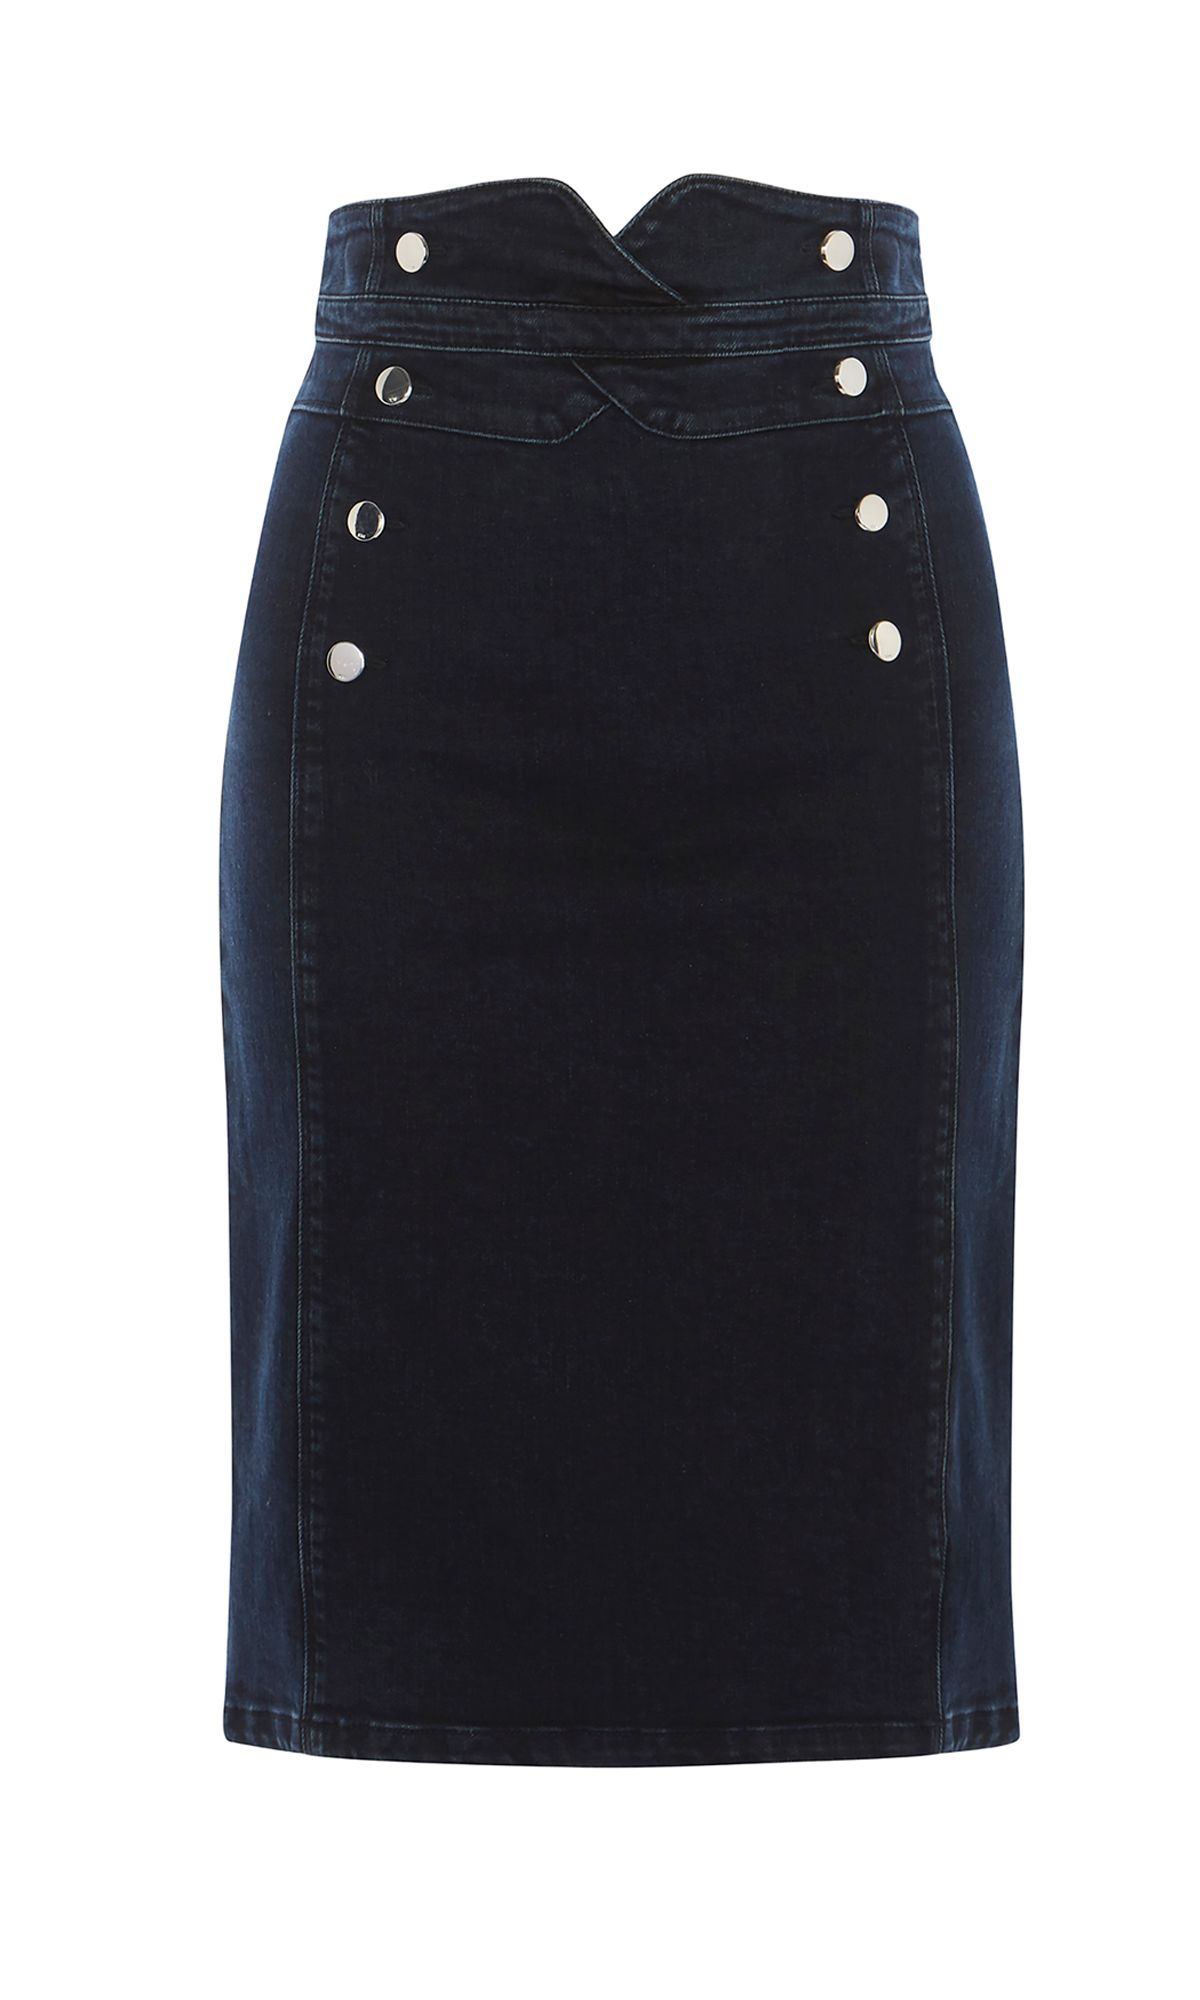 Karen Millen Nautical Denim Skirt, Denim Indigo